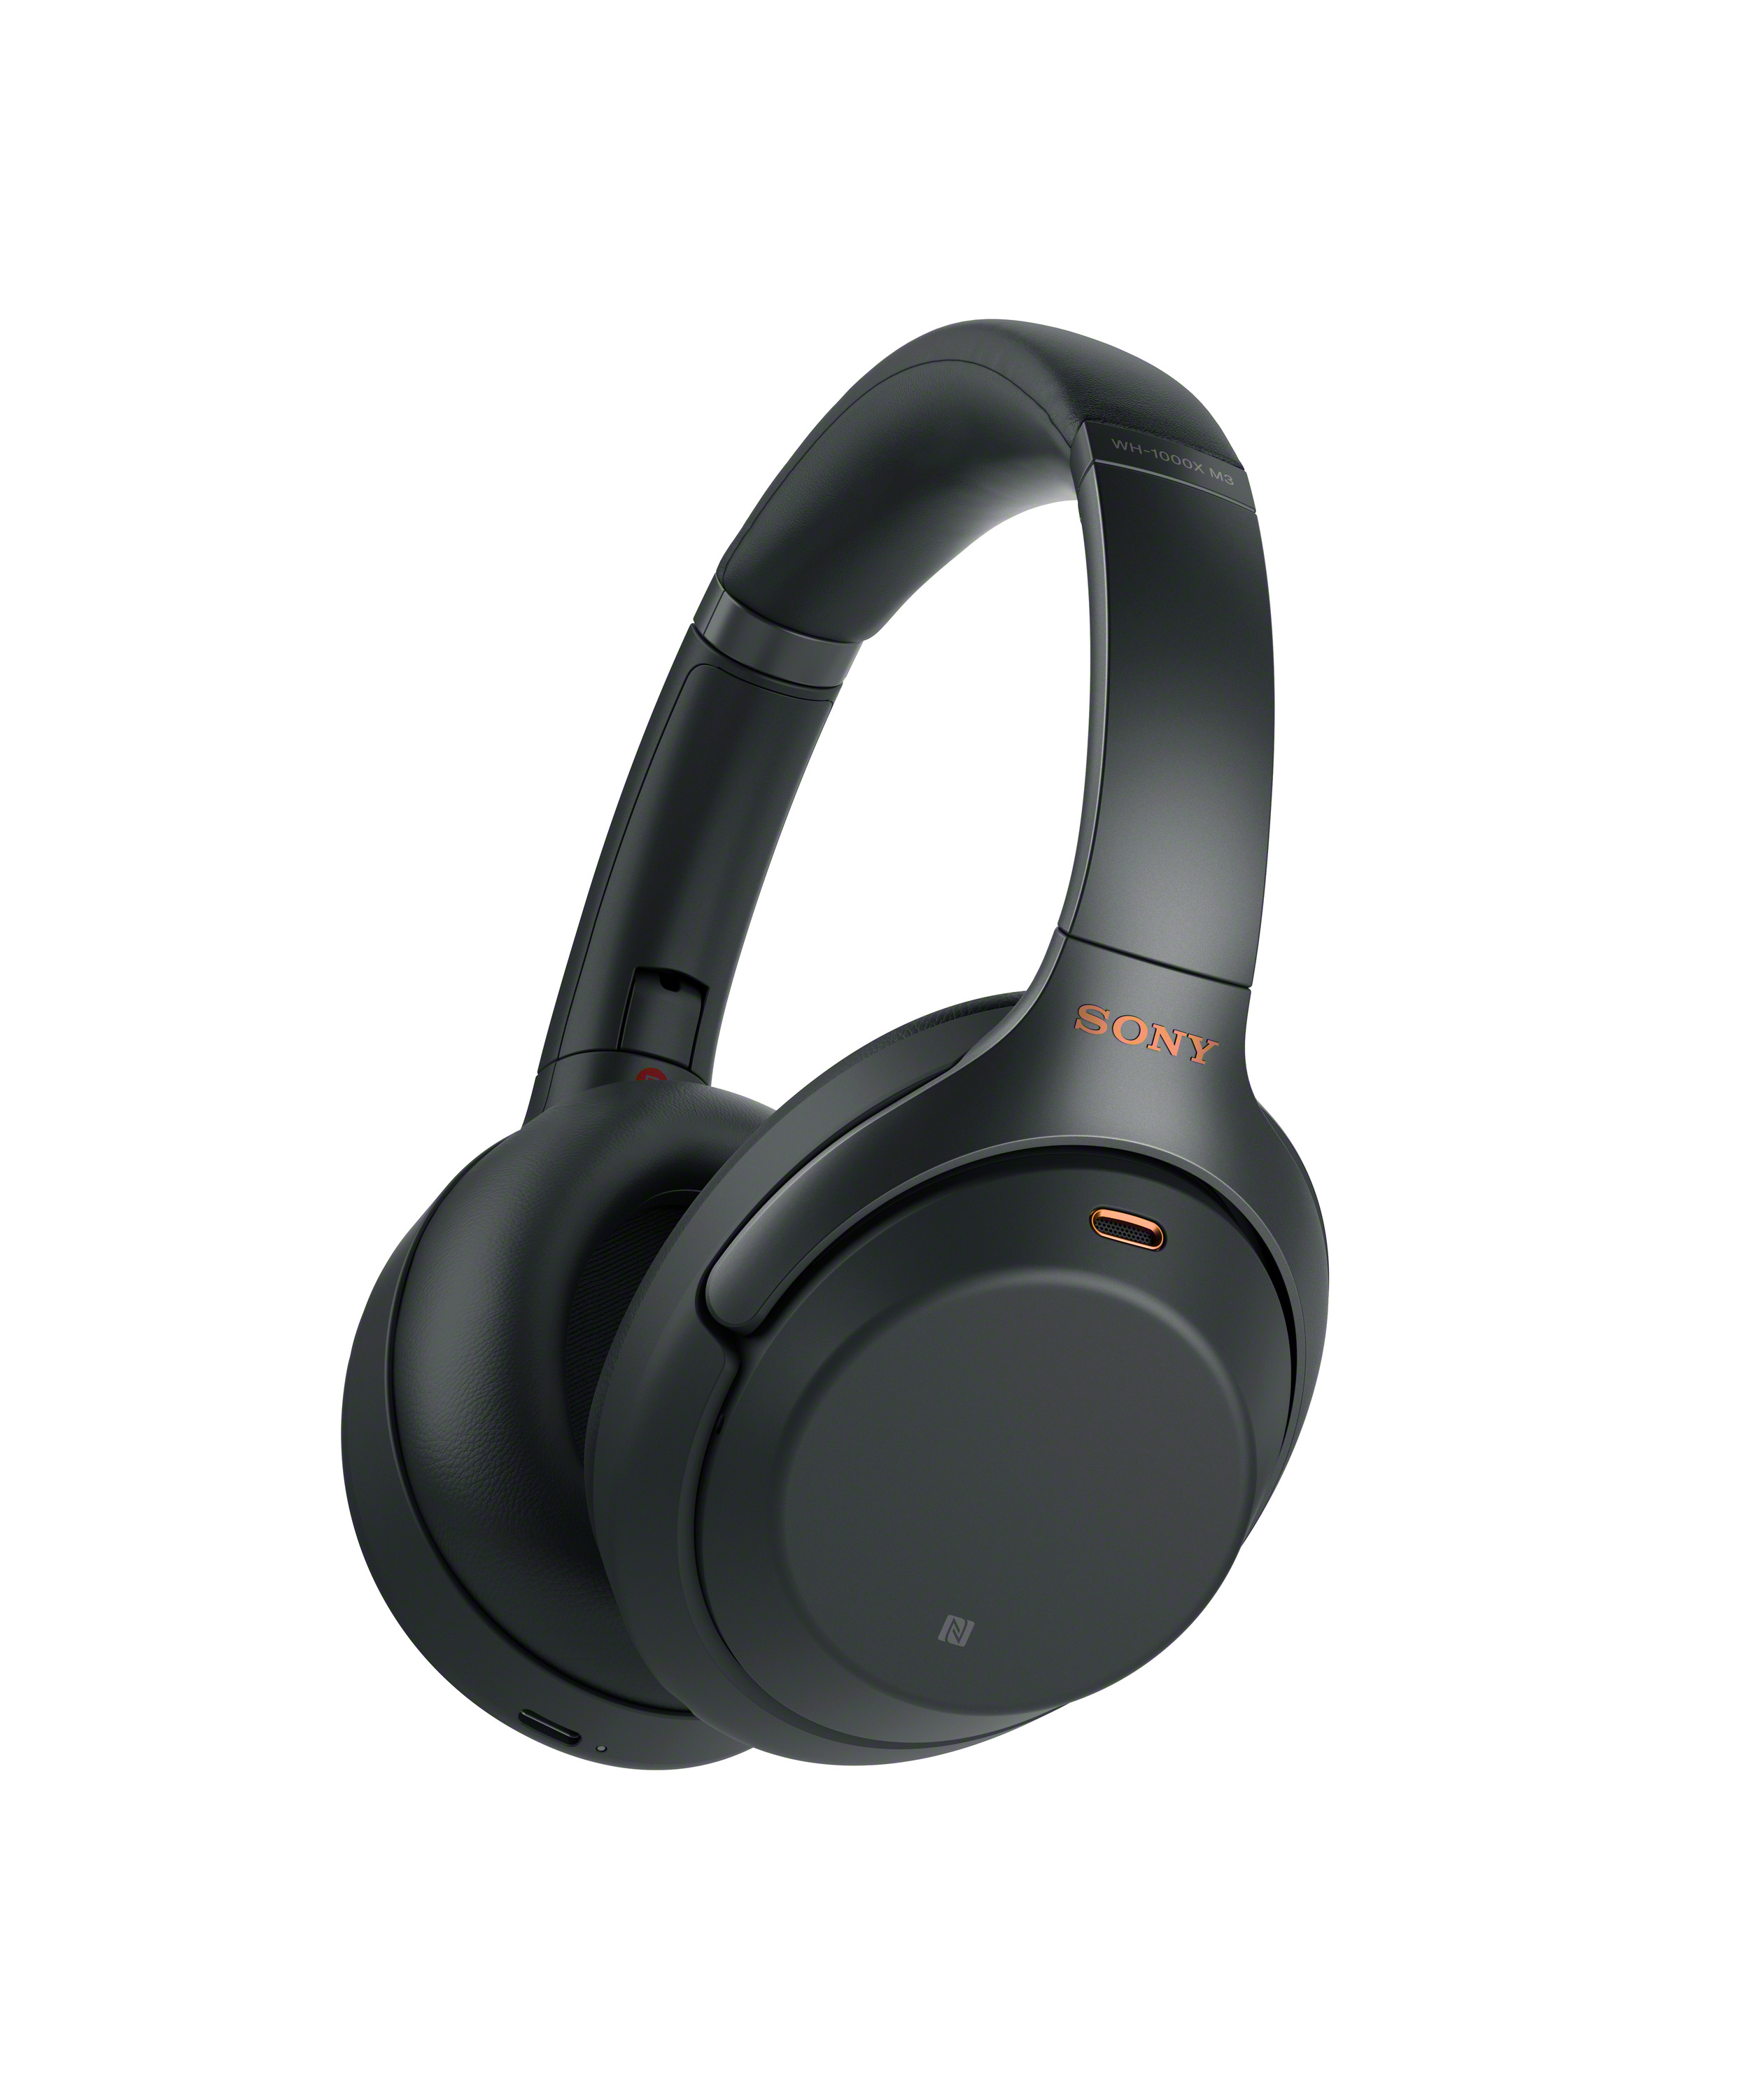 NEW Sony's Industry Leading Noise Canceling WH-1000XM3 Headphones- black